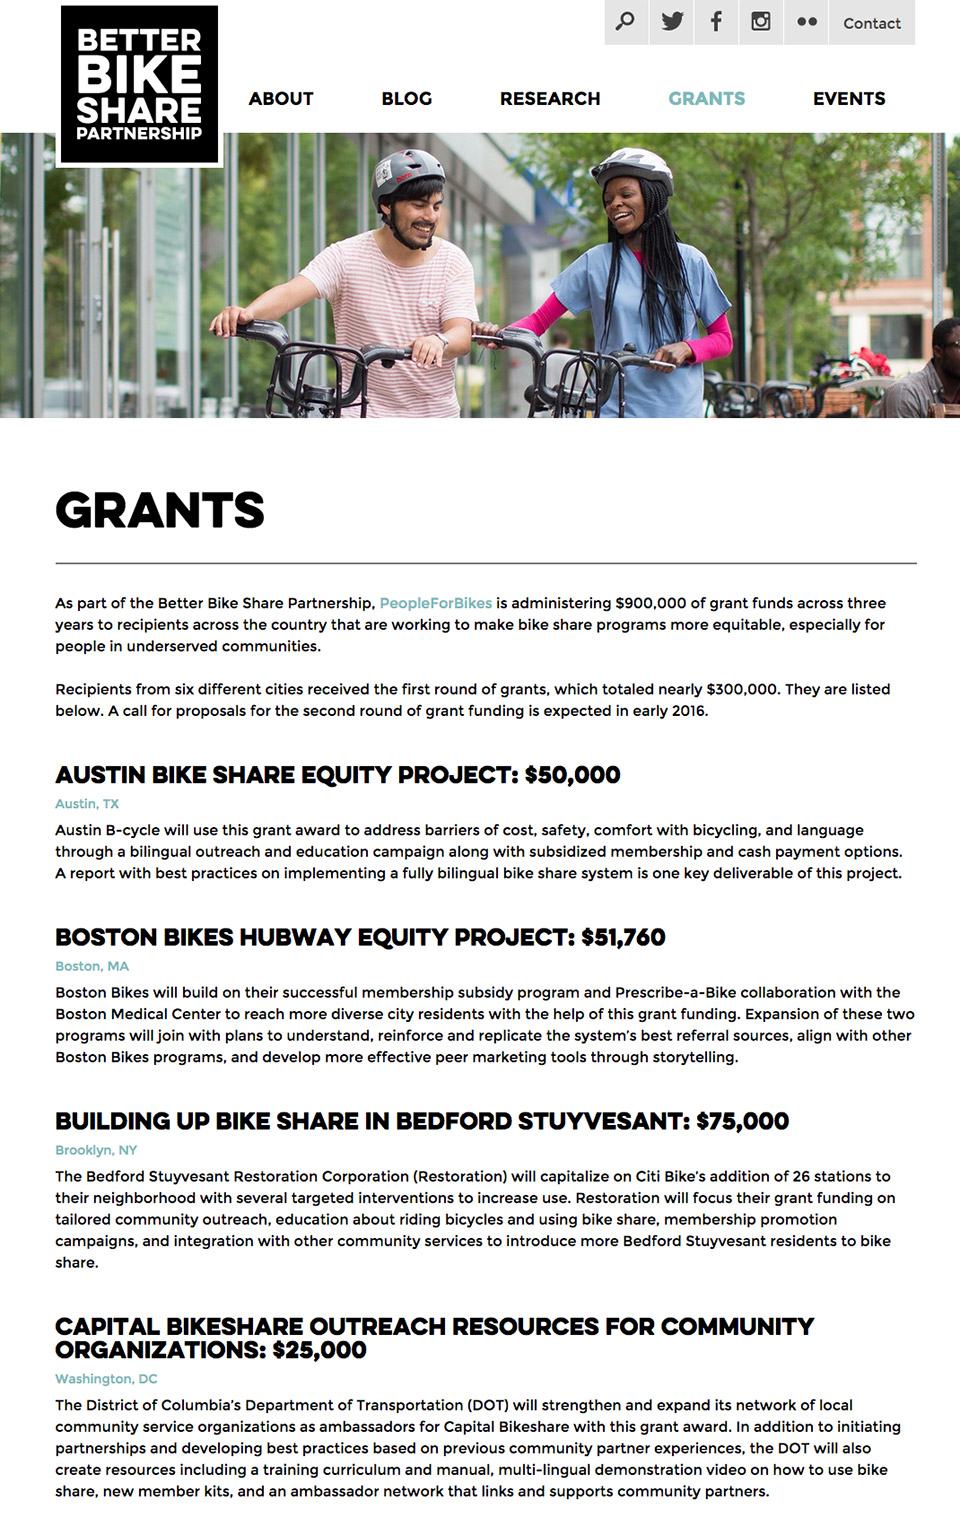 Better Bike Share Partnership: Grant Information